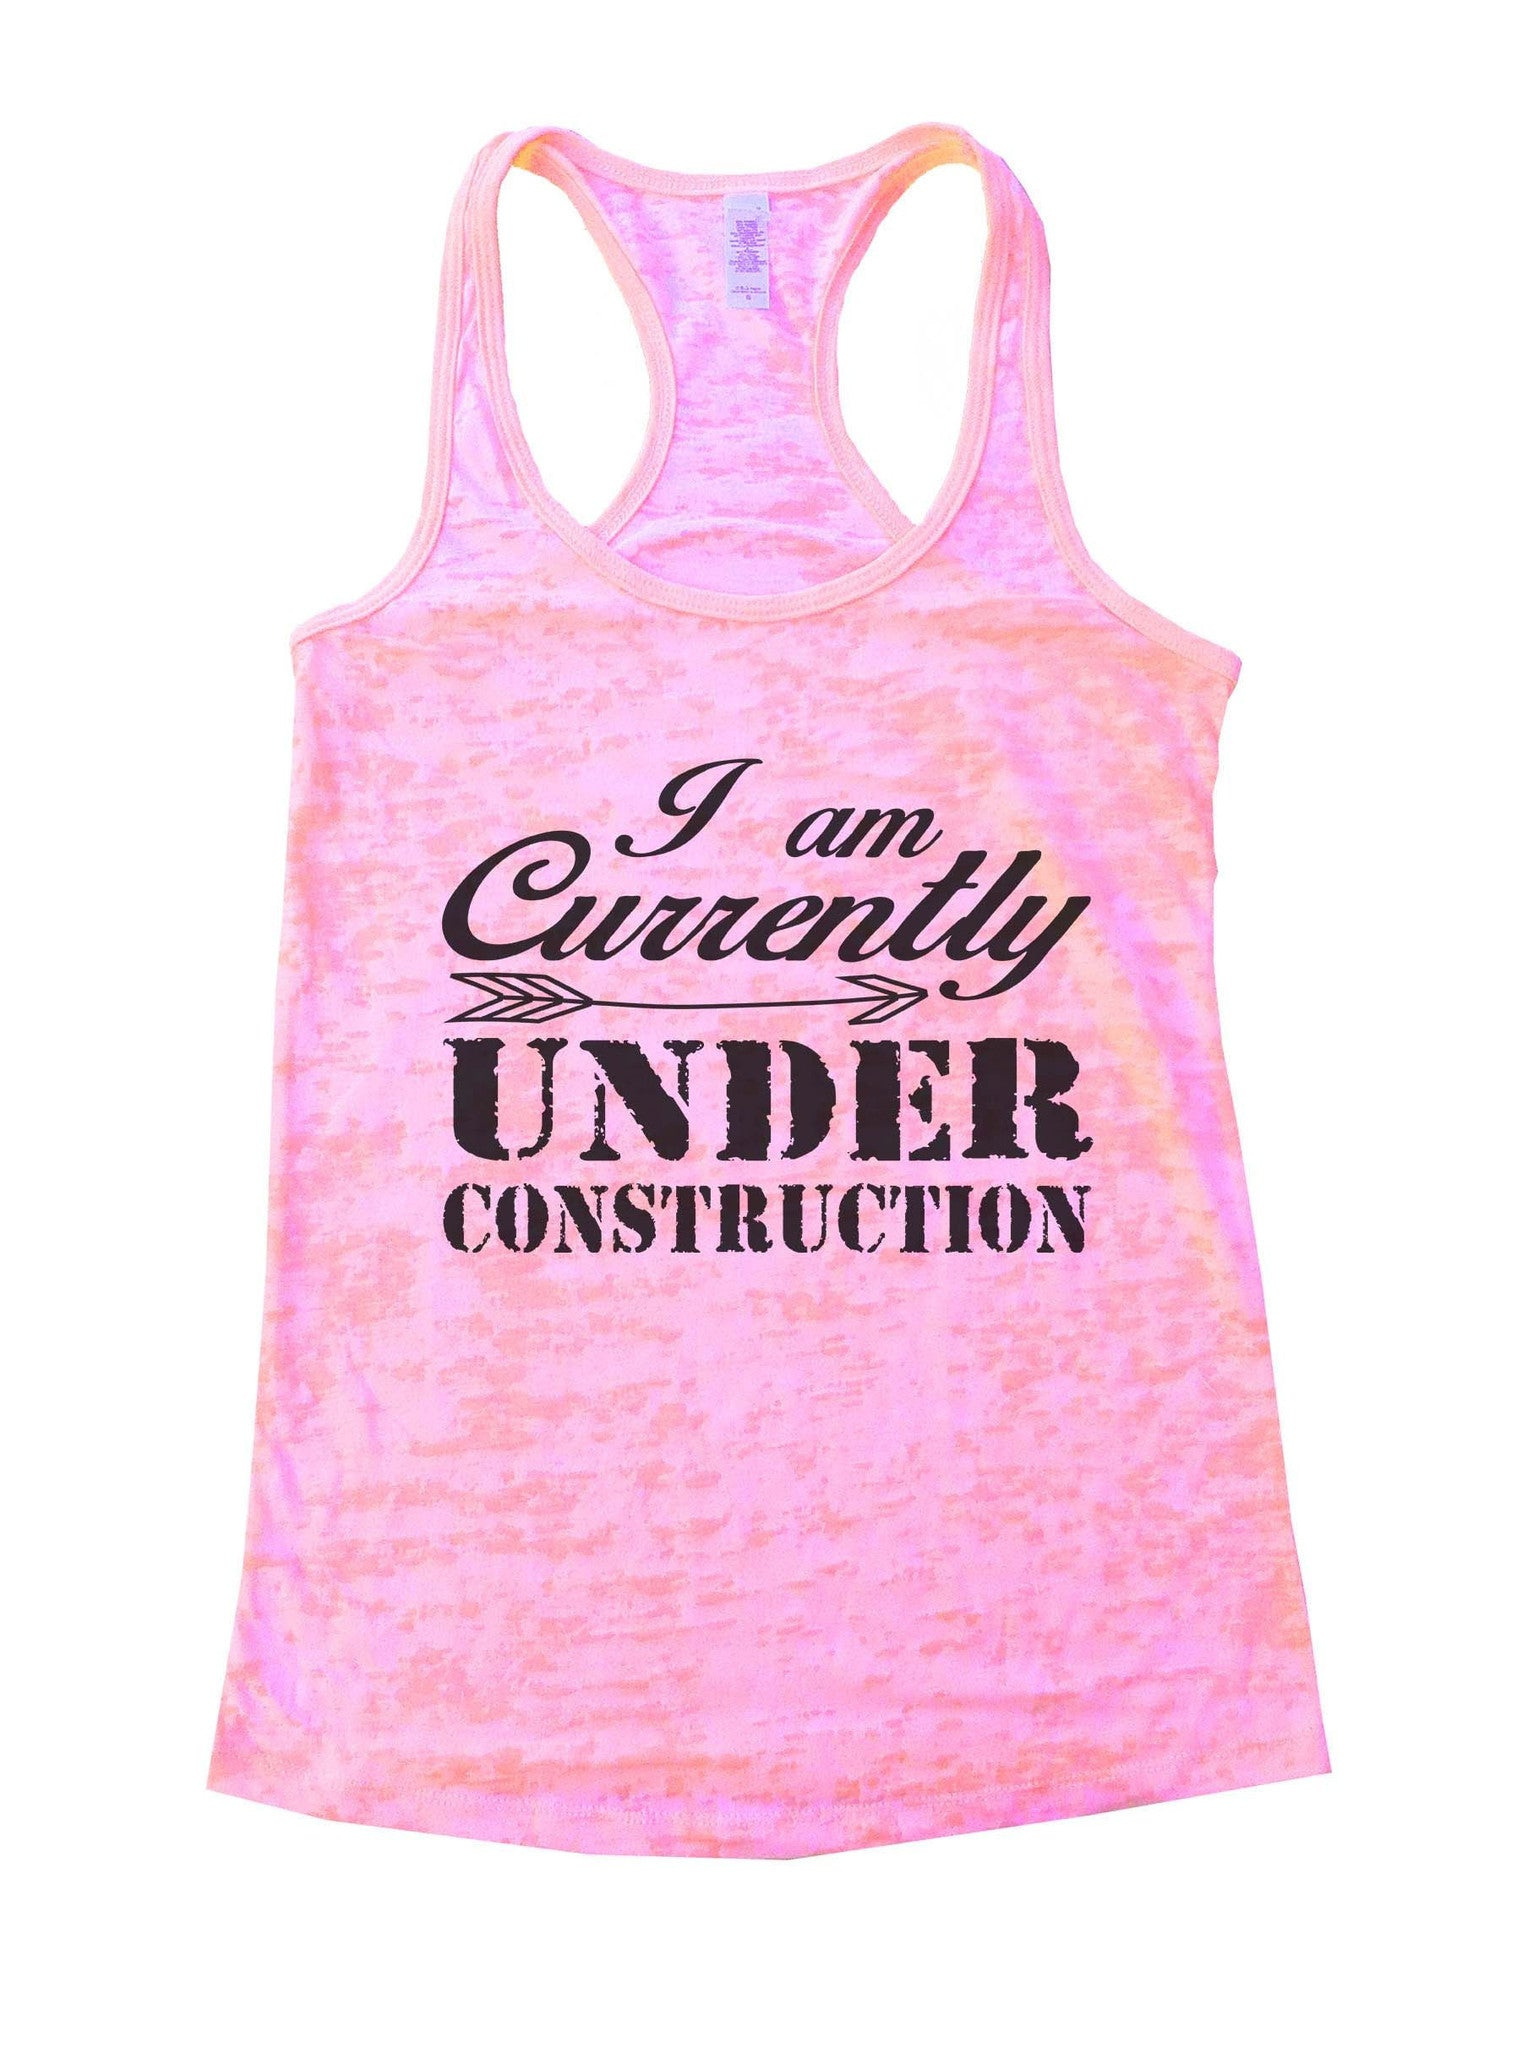 I Am Currently Under Construction Burnout Tank Top By BurnoutTankTops.com - 911 - Funny Shirts Tank Tops Burnouts and Triblends  - 1